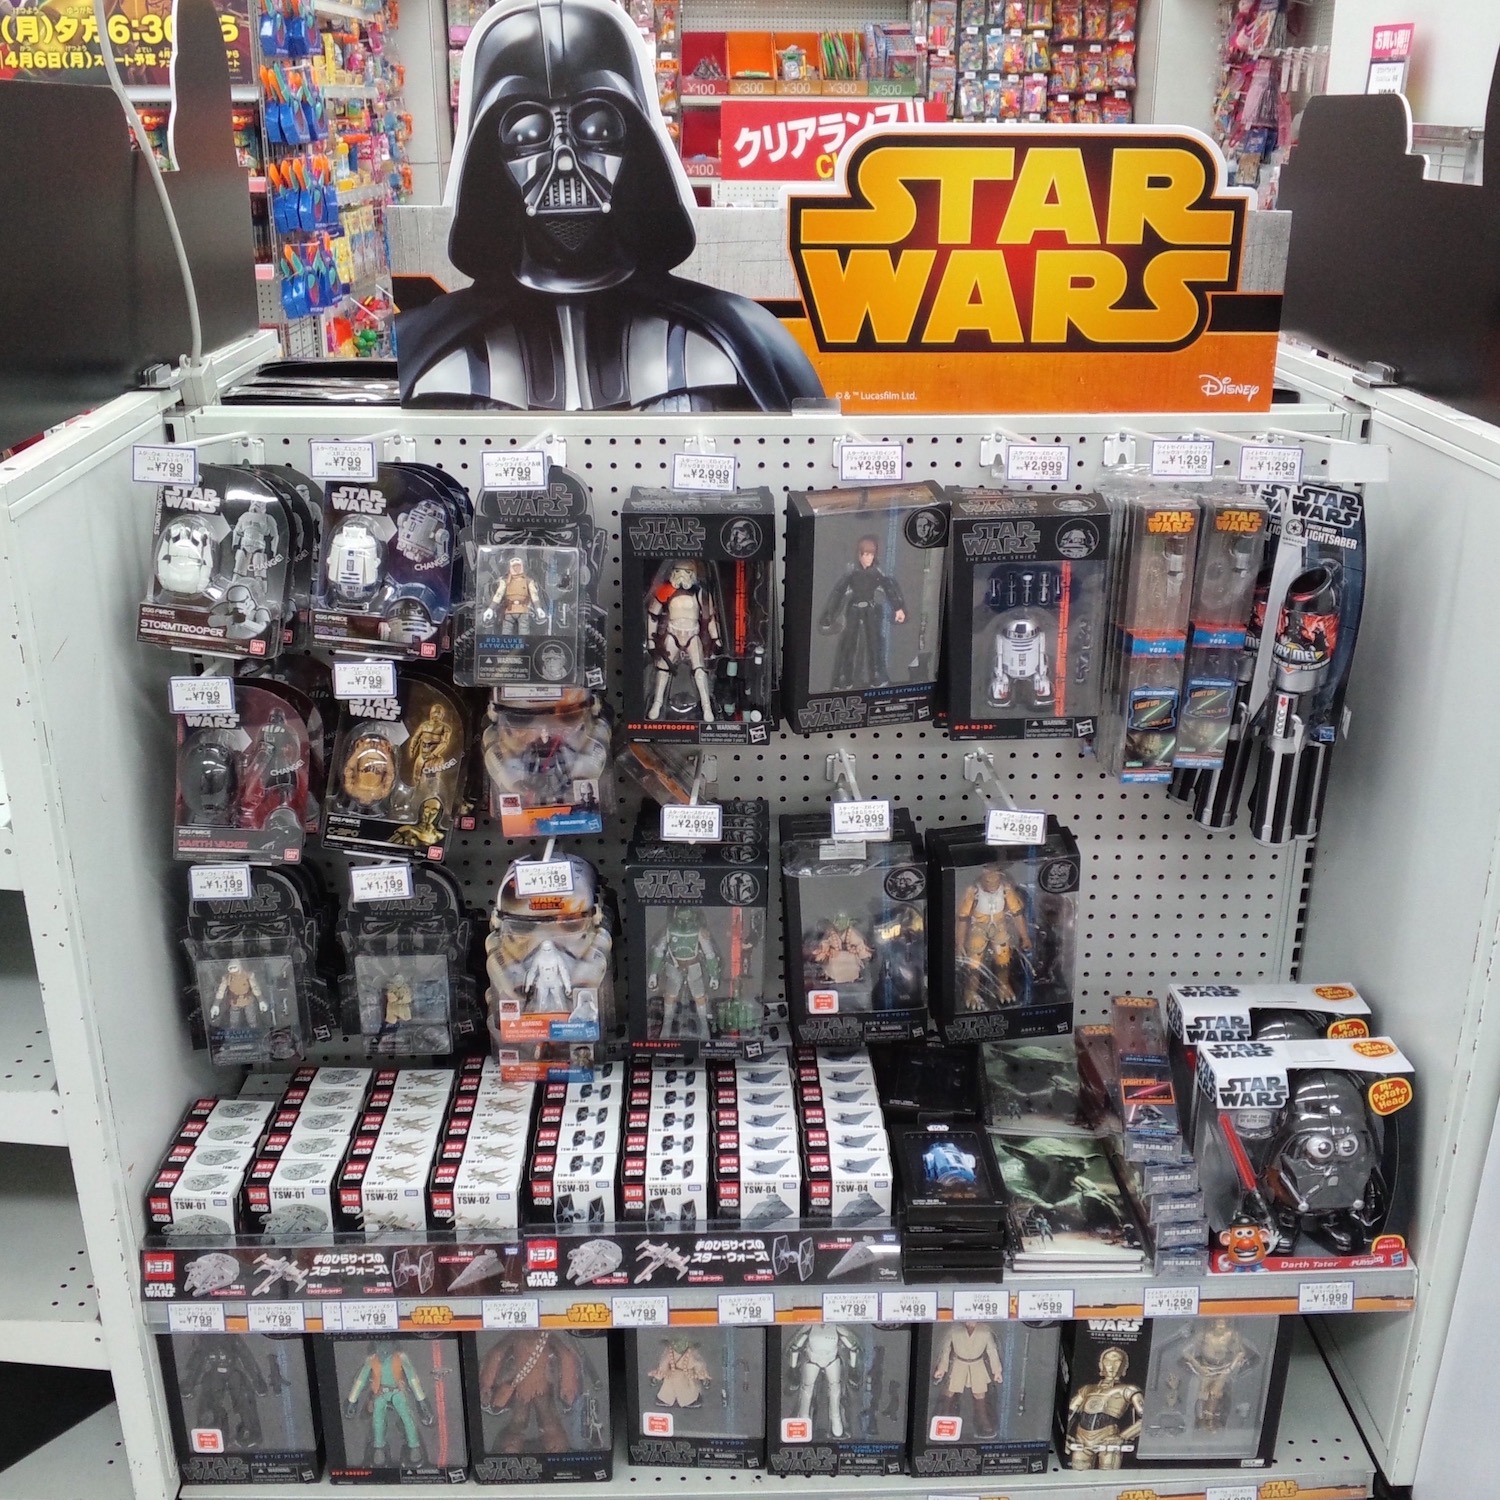 """Star Wars  toys on the shelf at Toys """"R"""" Us in Fuchu, Tokyo, circa mid-April 2015. Later that same month, the Toys """"R"""" Us location on Odaiba Island became the site of   """"Destination Star Wars."""""""